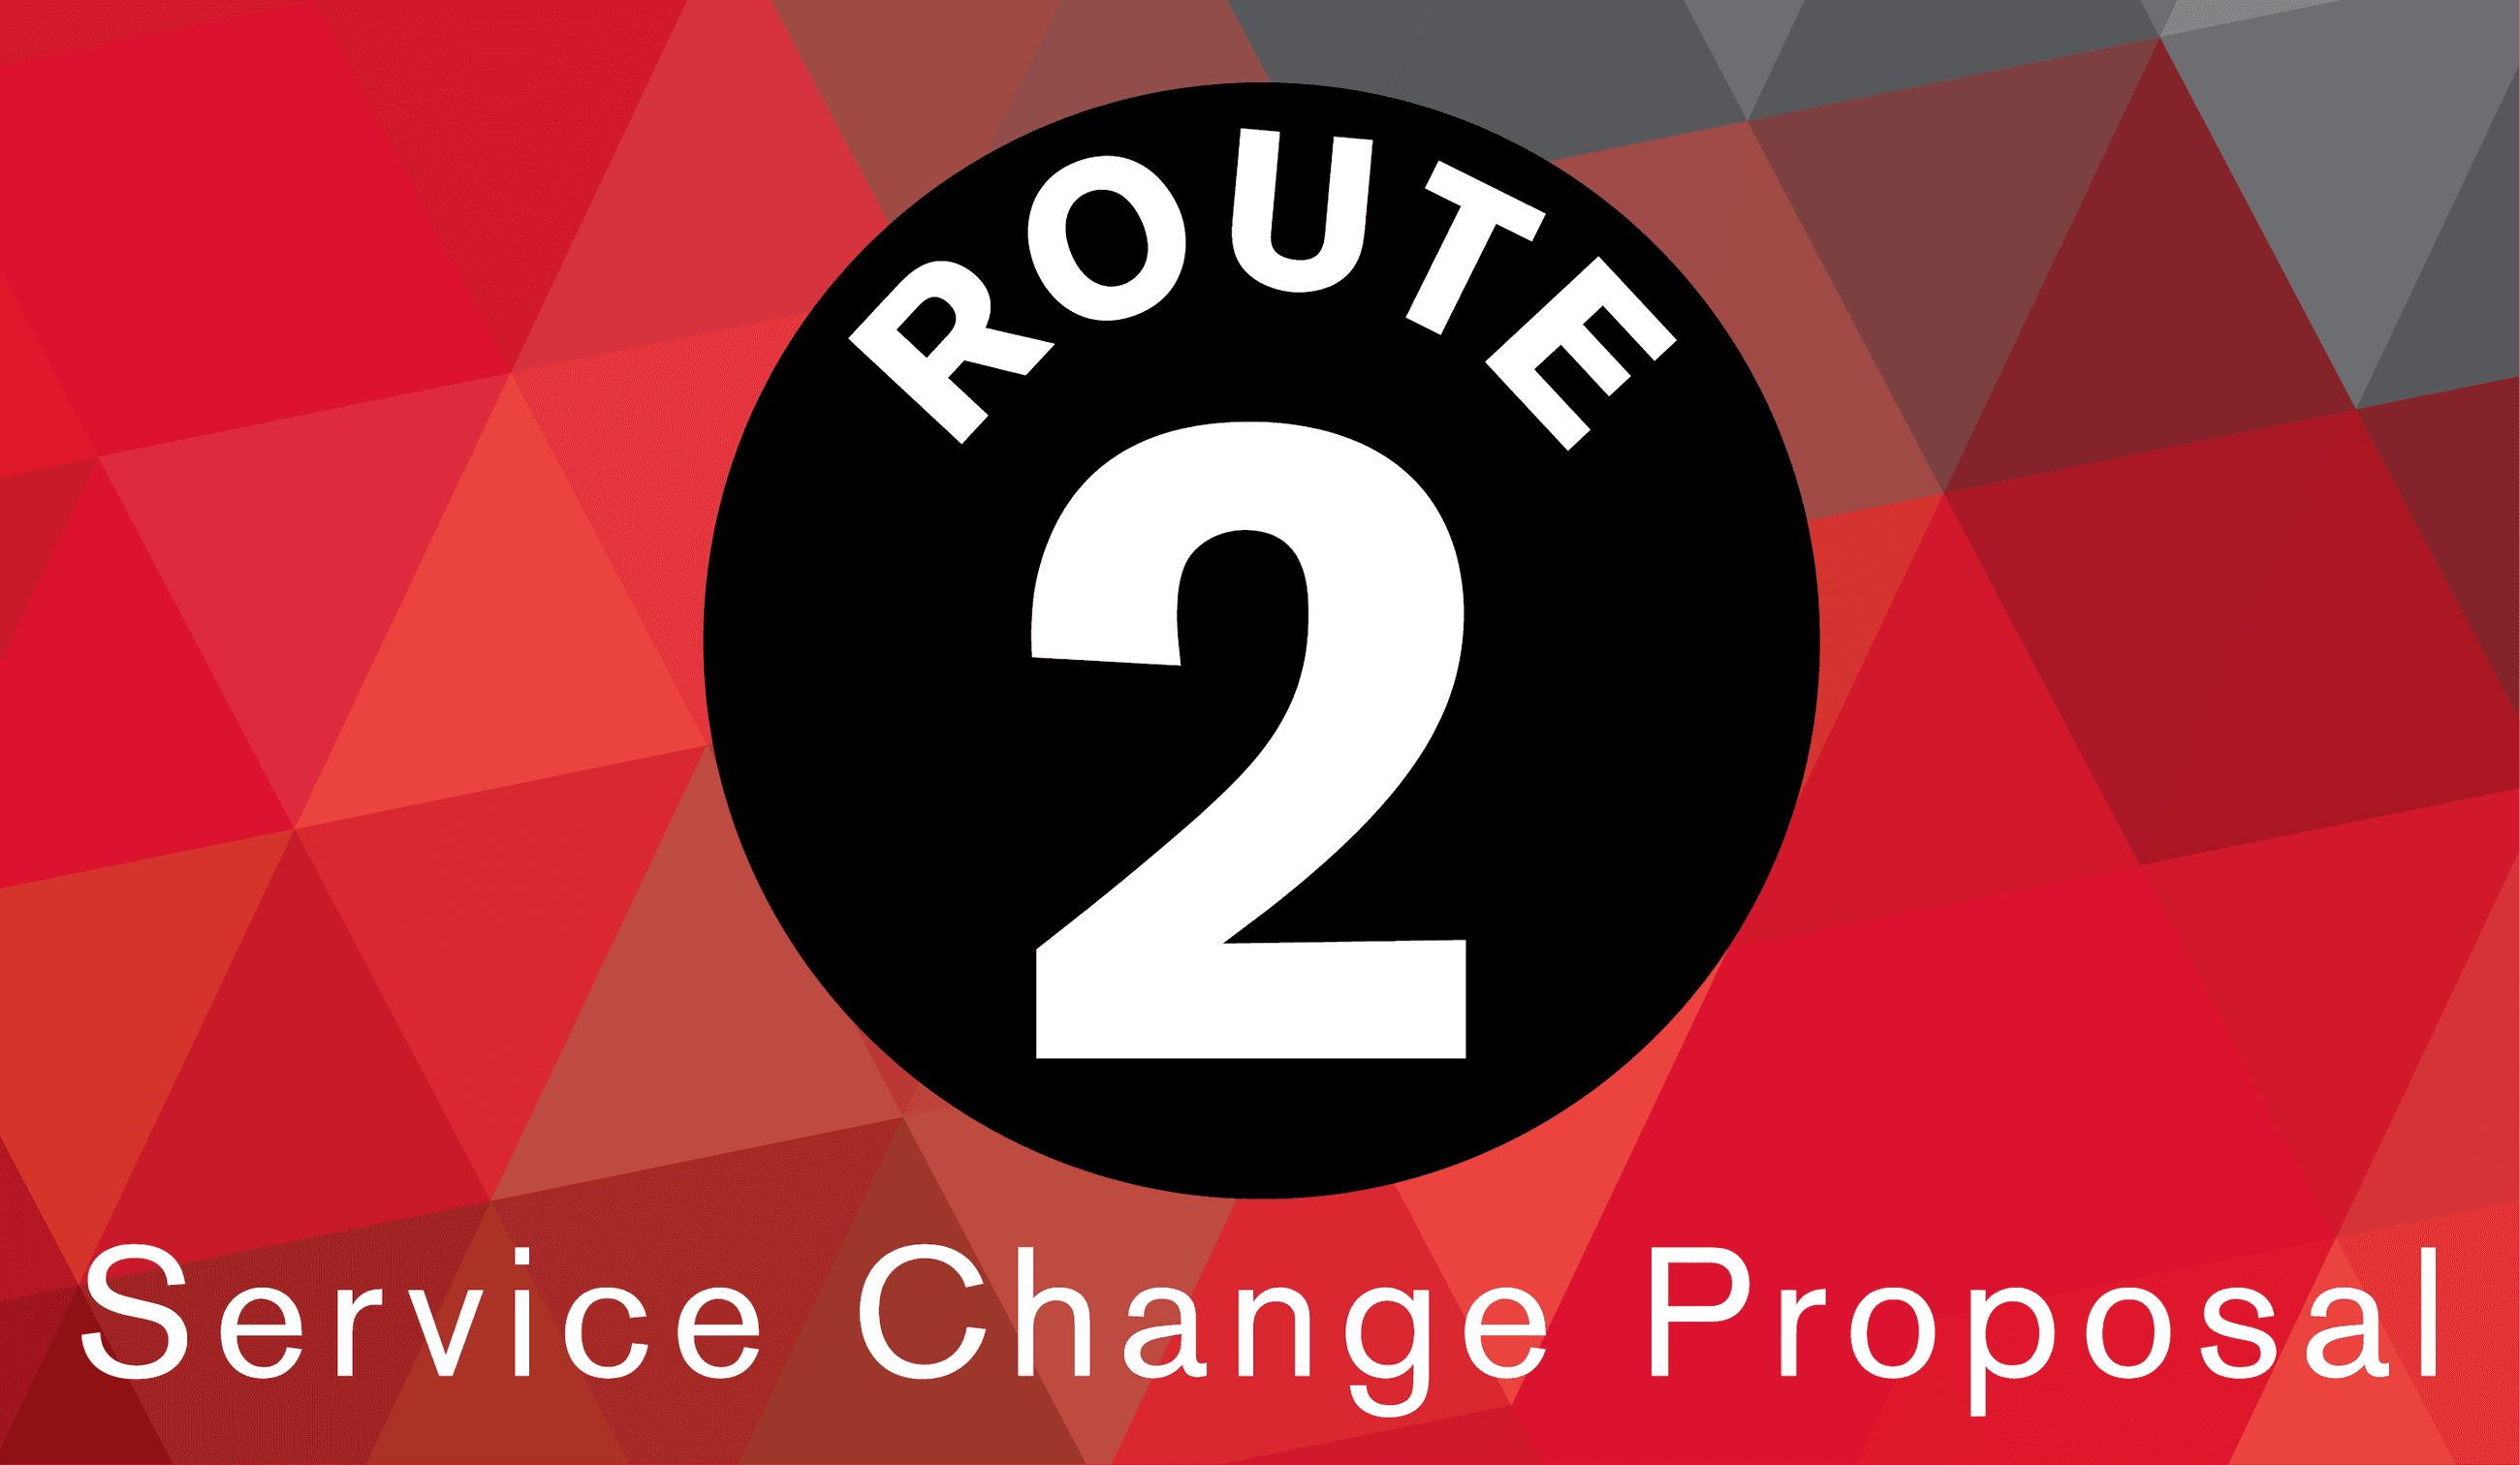 Route 2 service change proposal